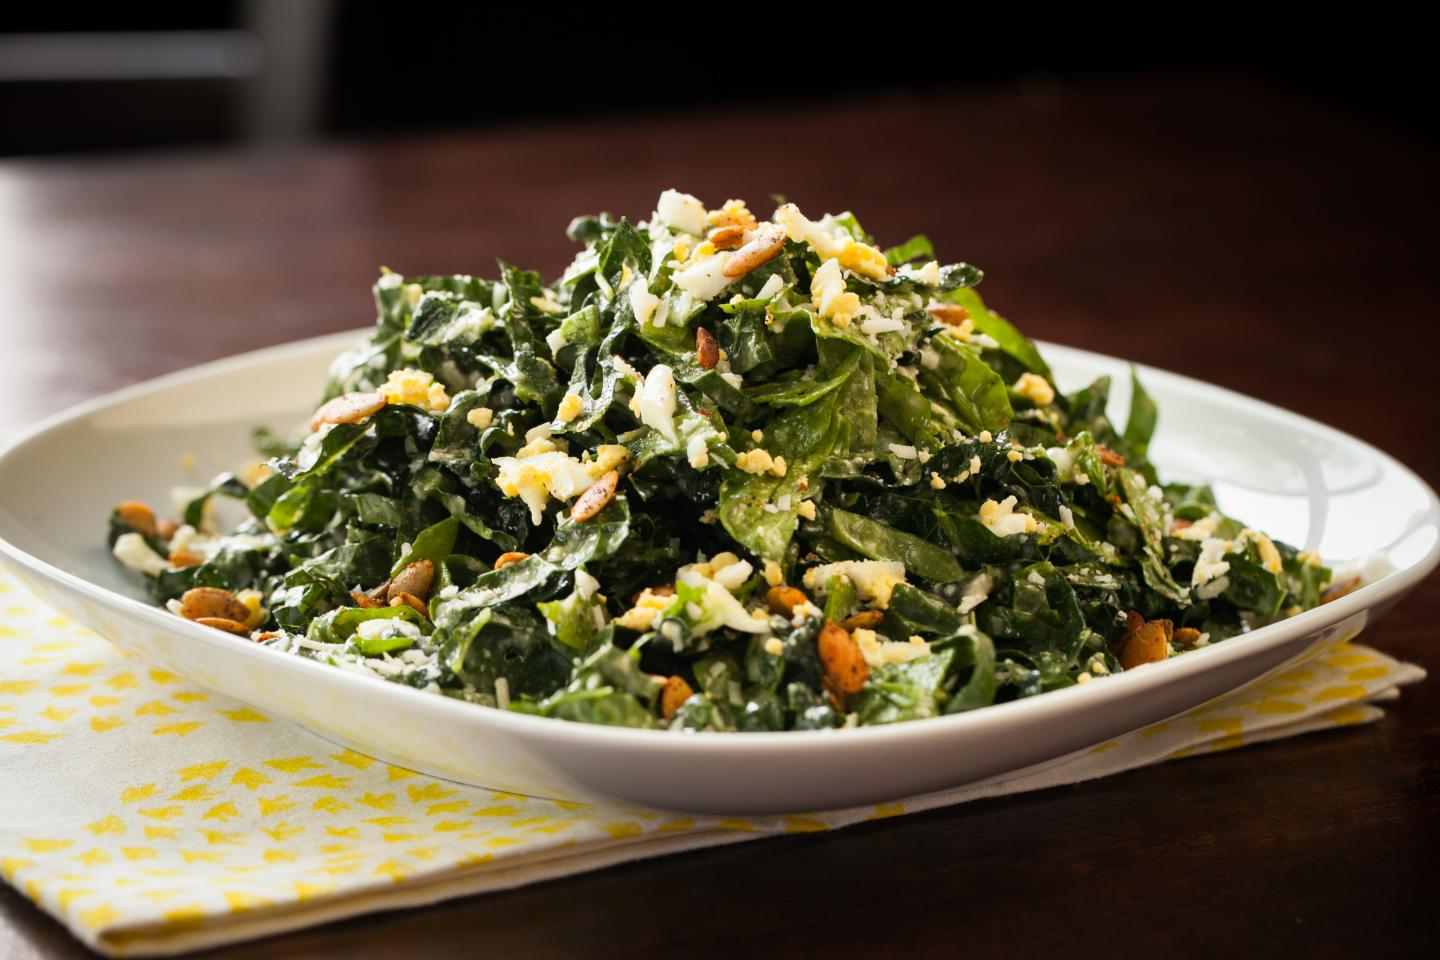 Wildfire Gluten-Free Tuscan and Kale Spinach Salad